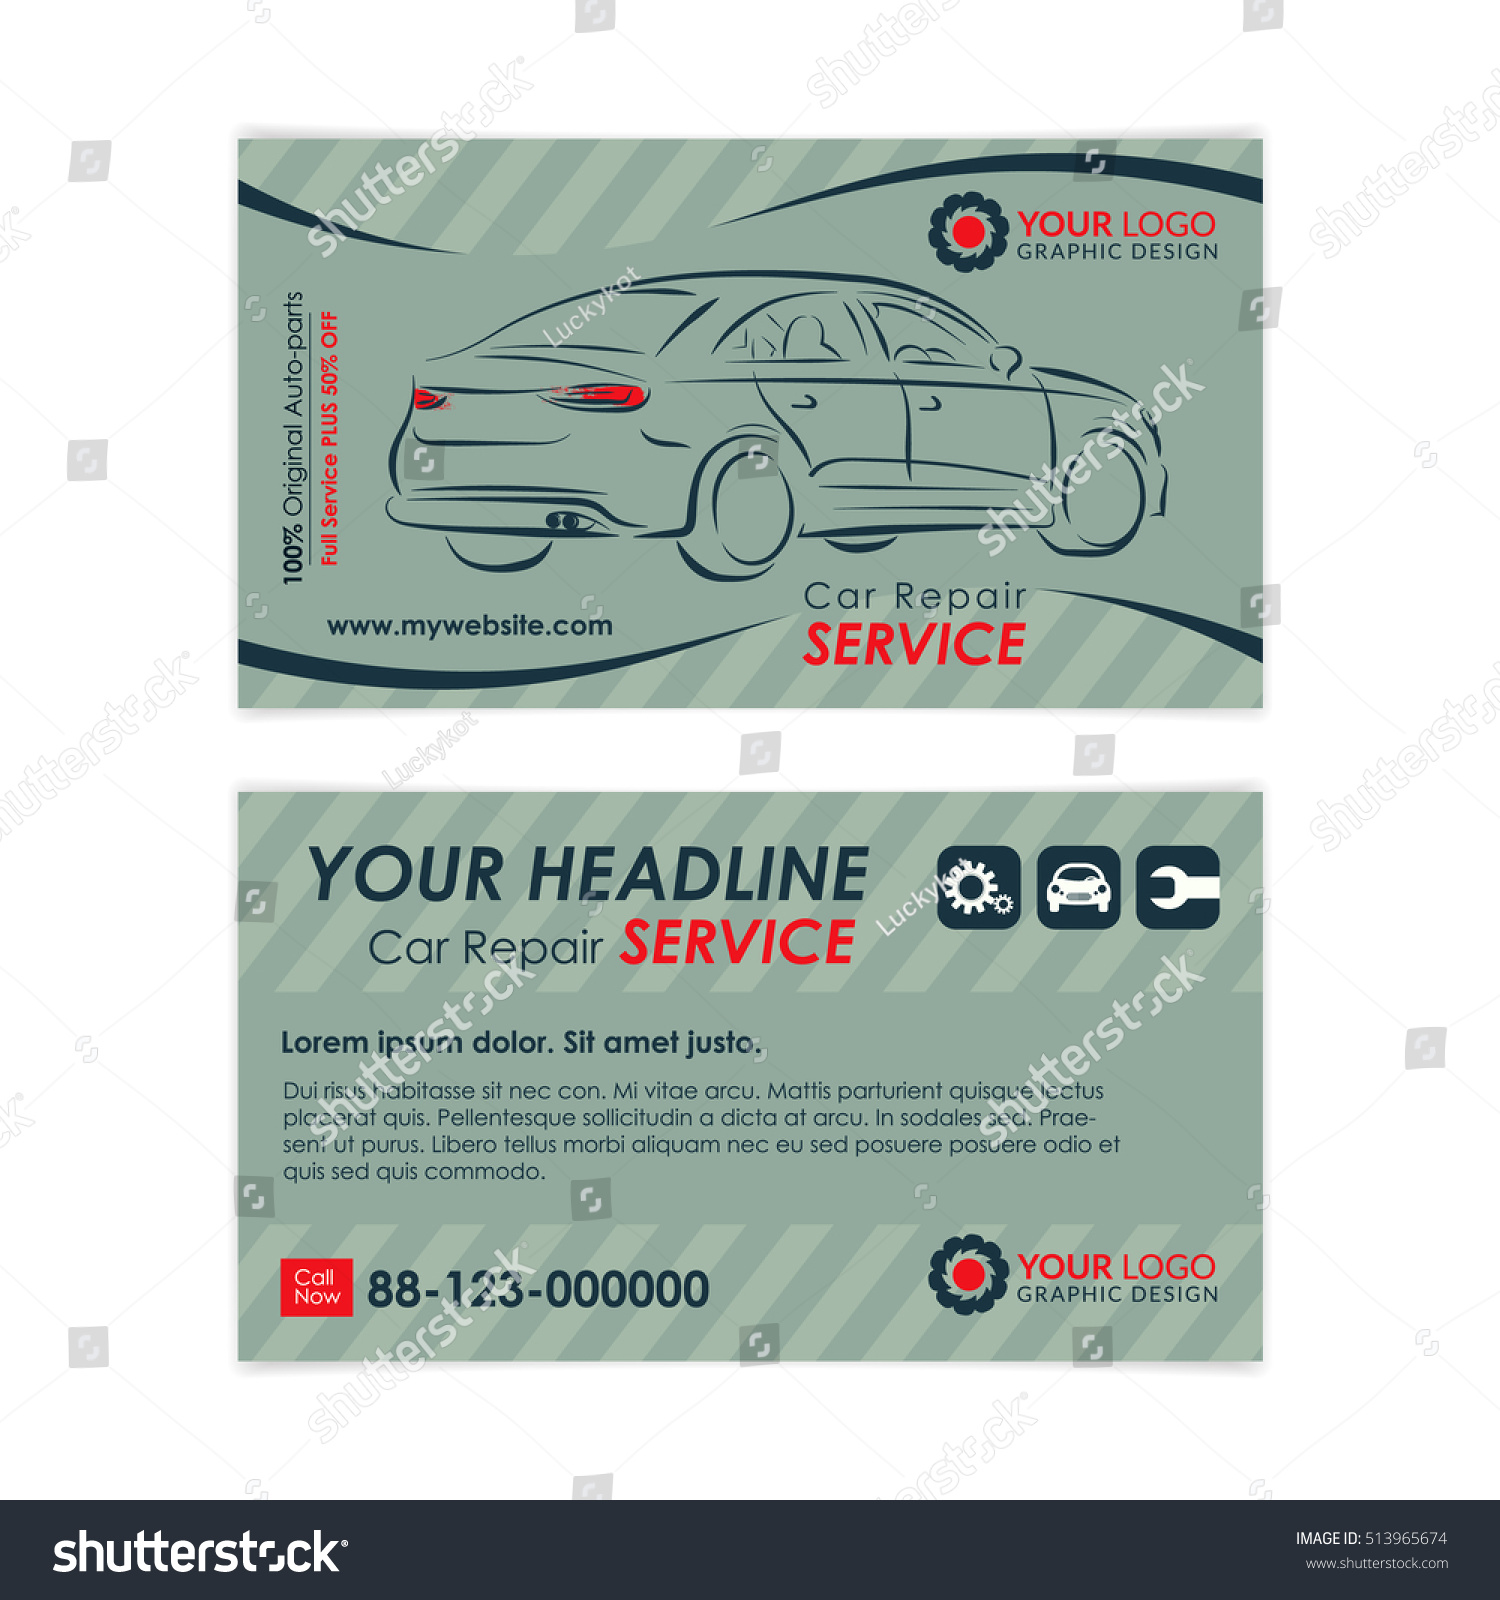 Auto Repair Business Card Template Create Stock Vector 513965674 ...